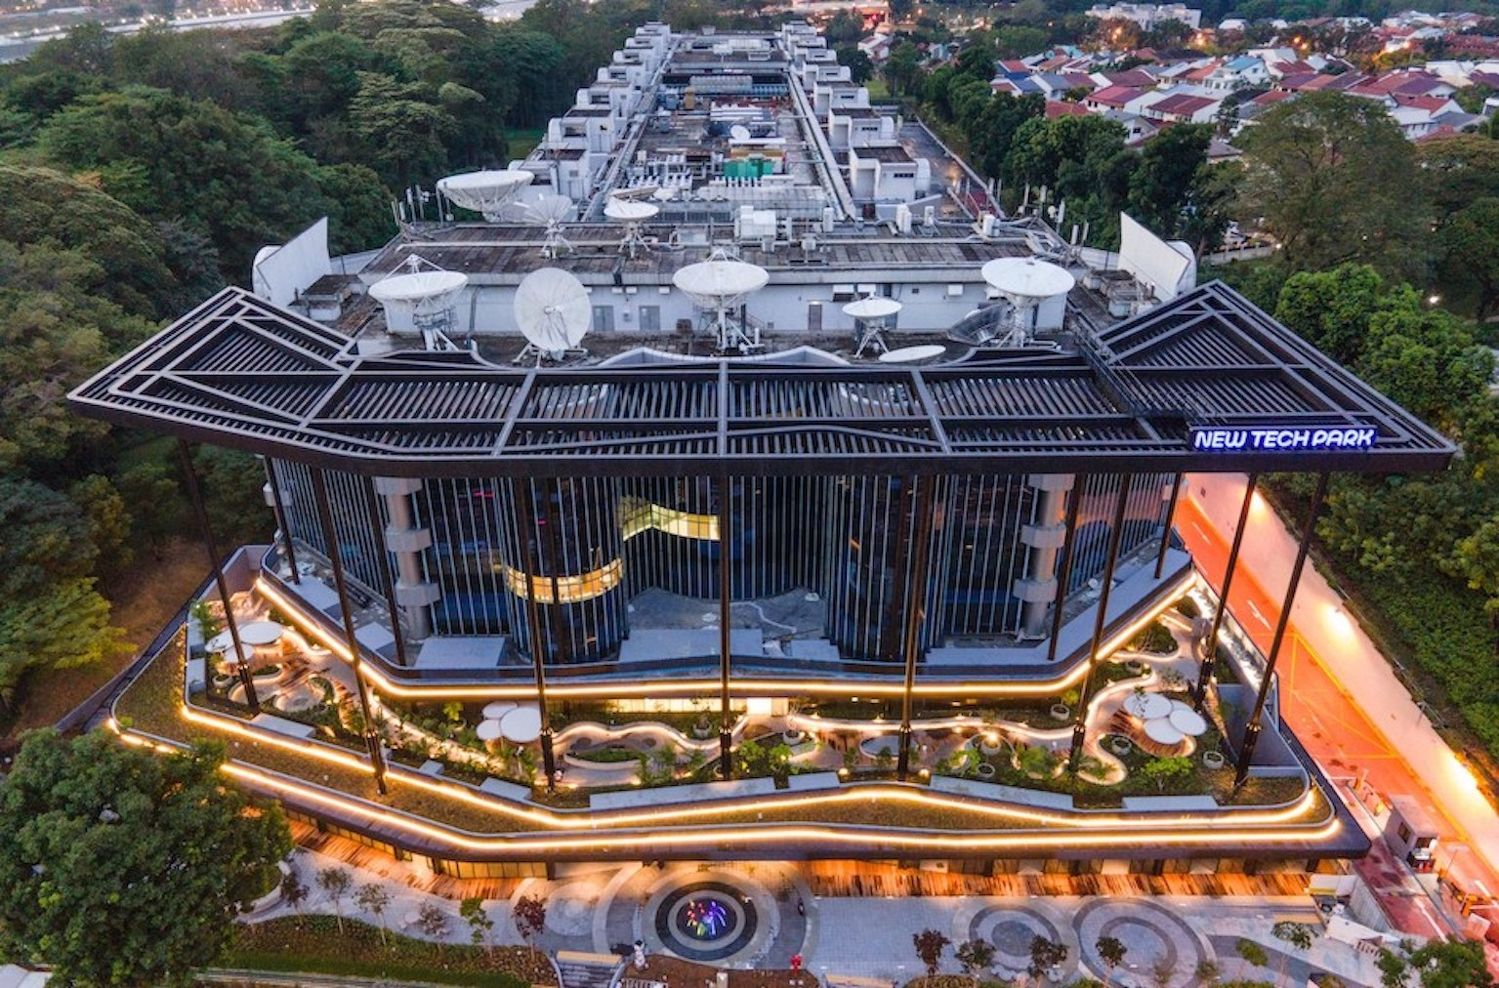 AERIAL-VIEW-NTP - EDGEPROP SINGAPORE